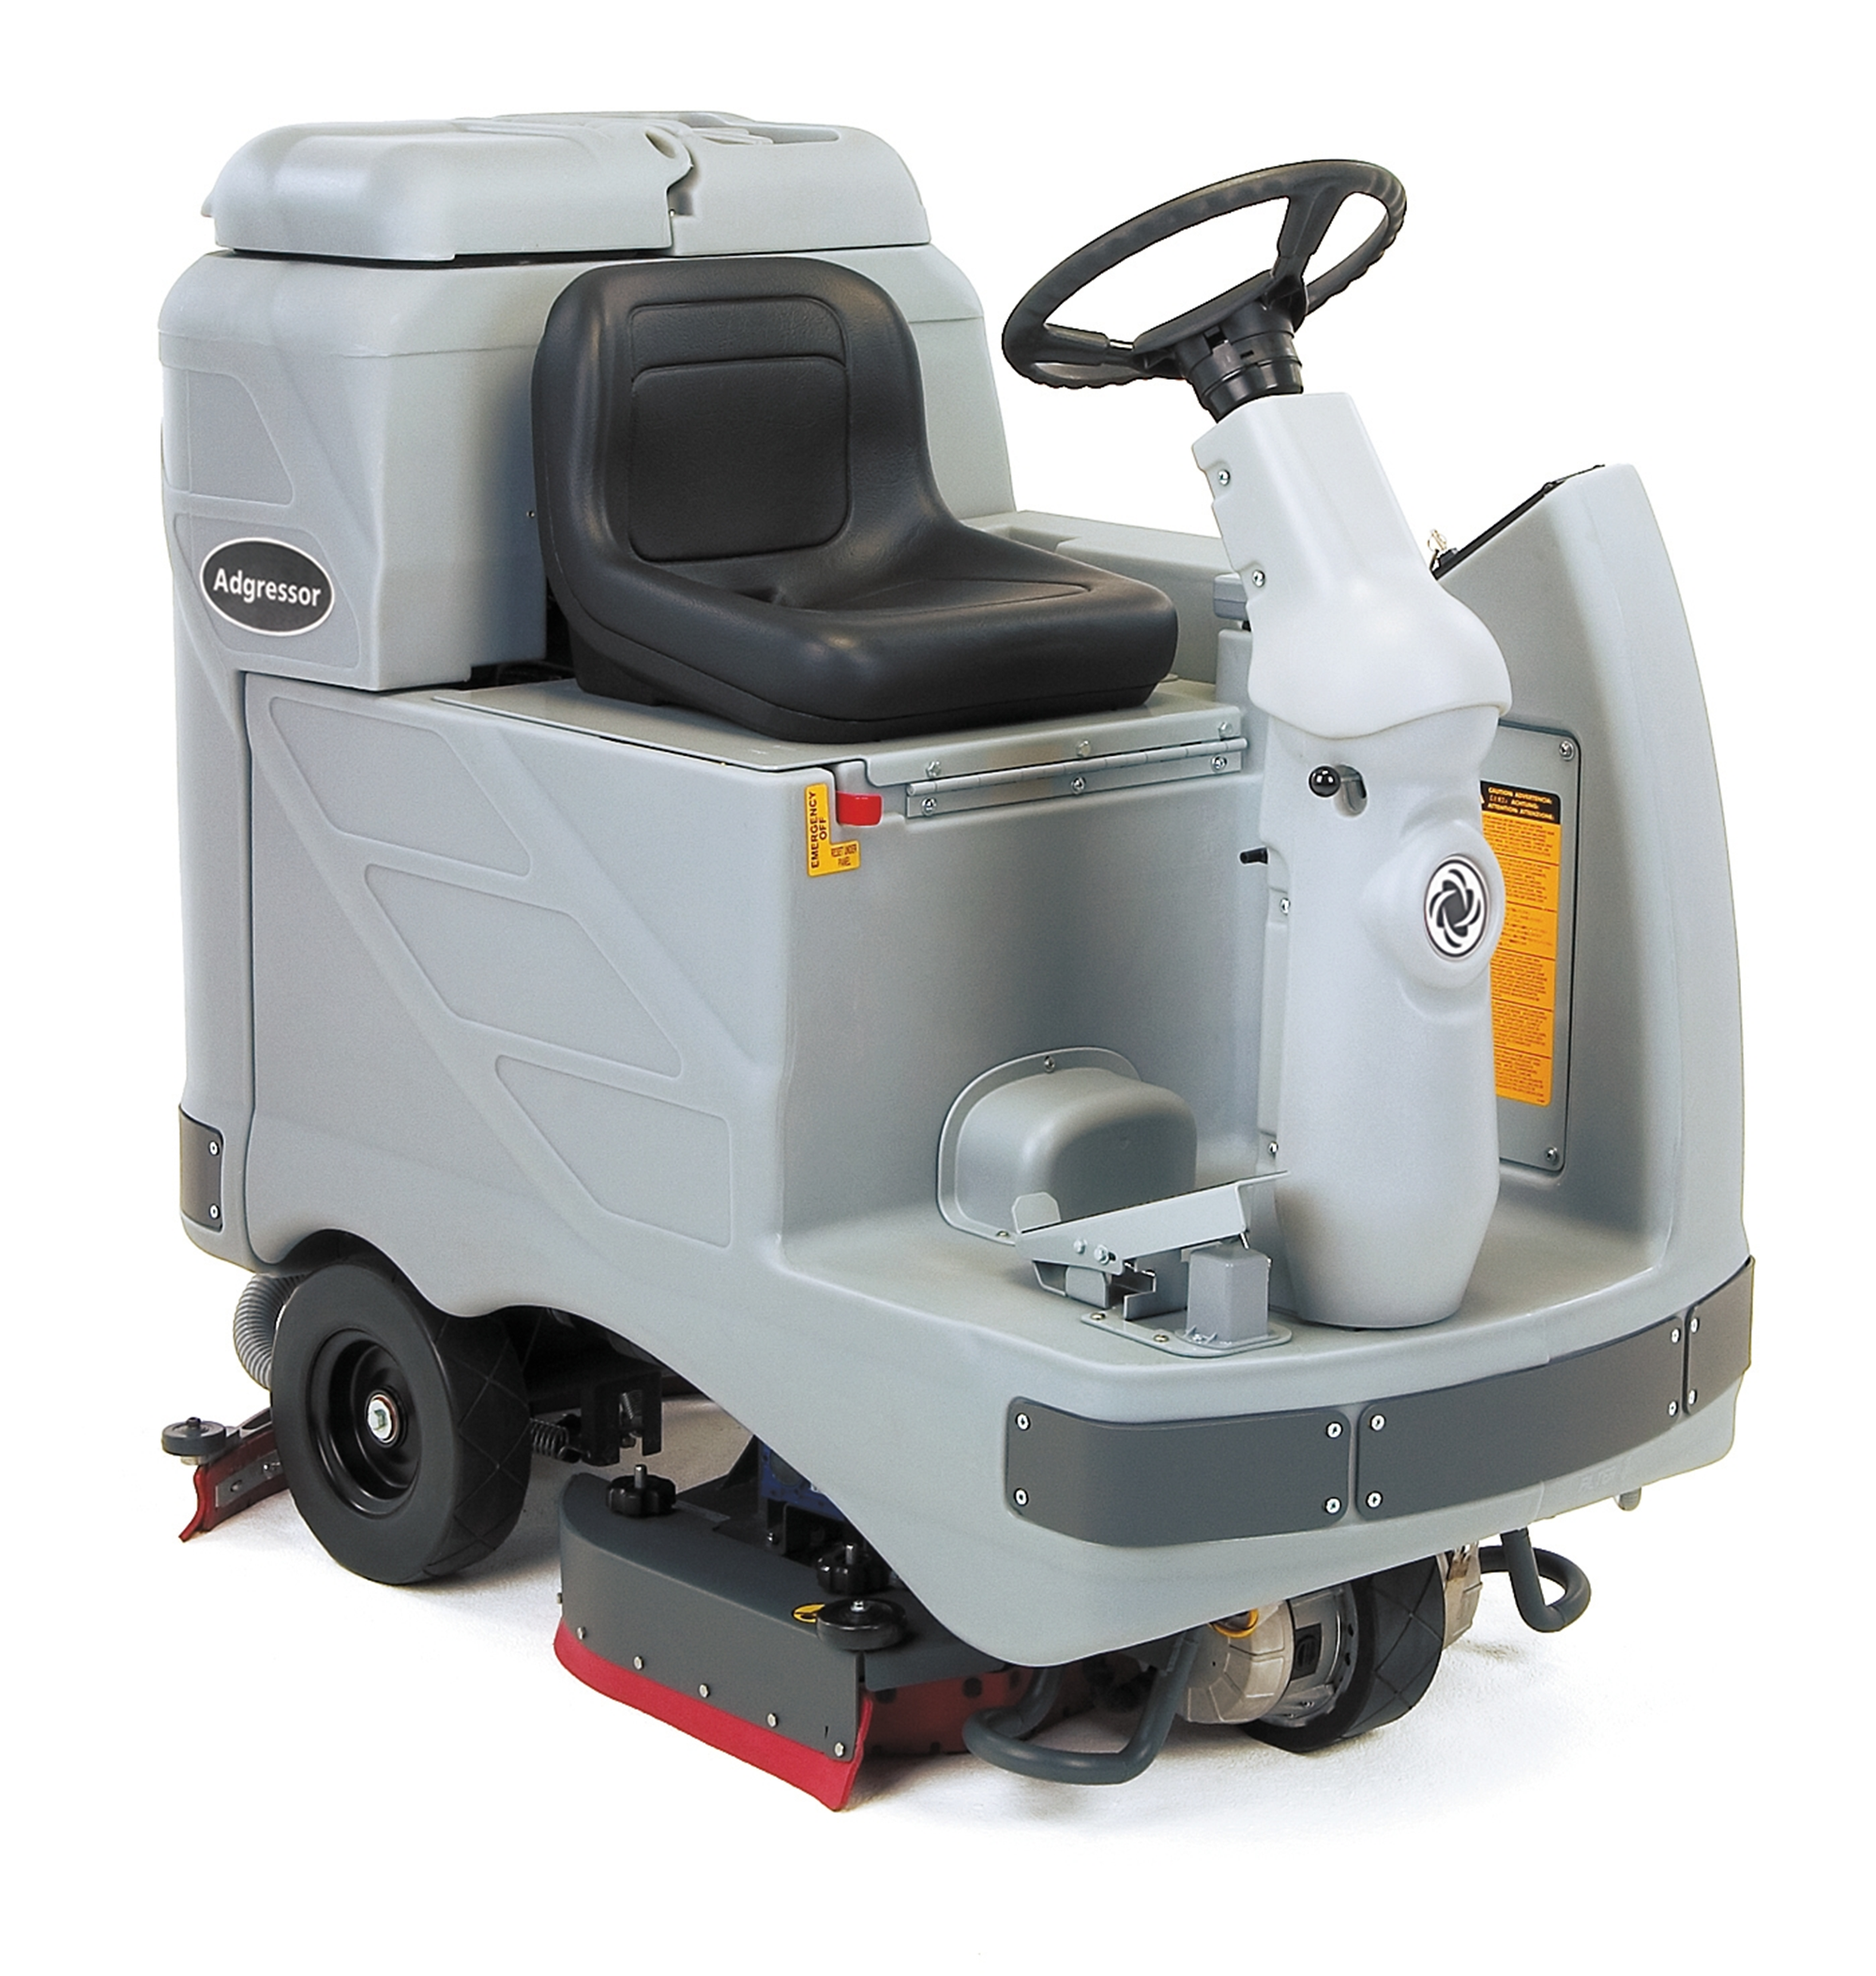 Product, Floor cleaning, Scrubber dryers, Stand-on and ride-on scrubber dryers, Nilfisk, ADGRESSOR X3520C 420AH SC